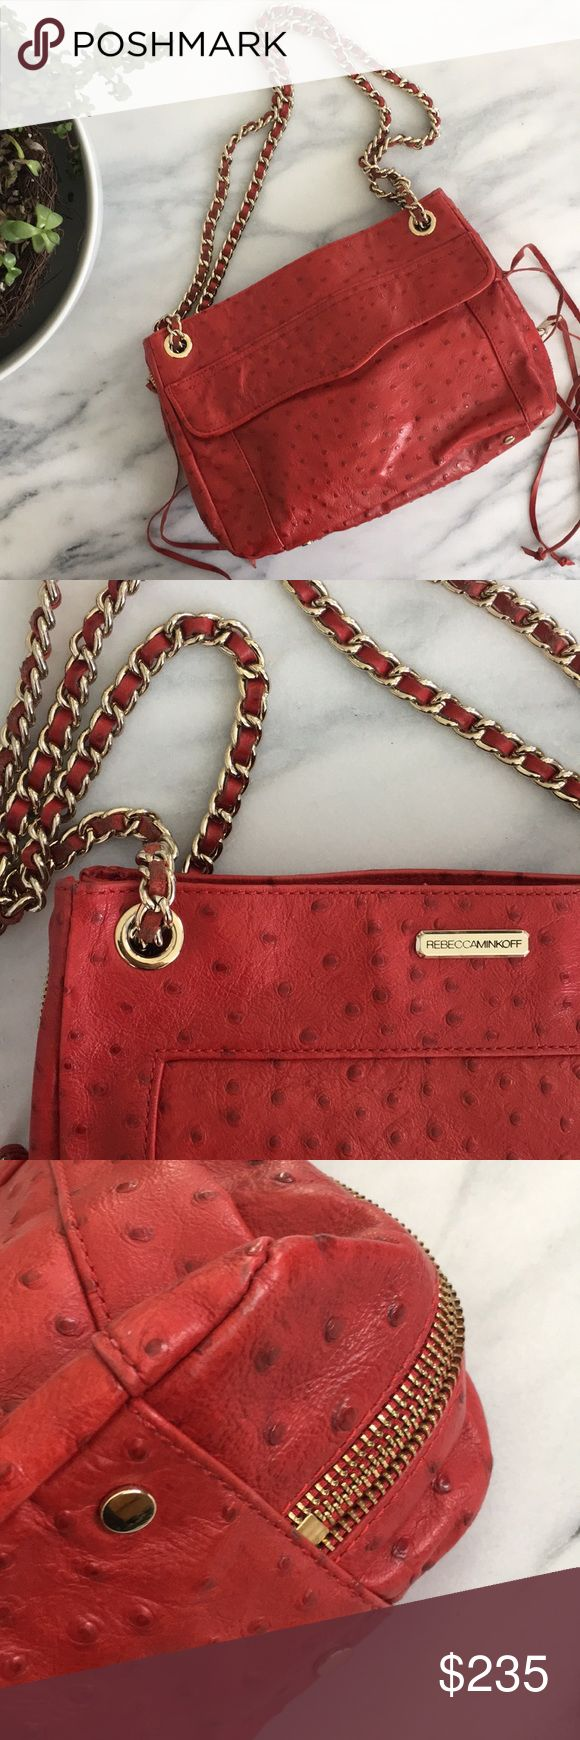 Rebecca Minkoff Bag Rebecca Minkoff medium sized bag in a beautiful cherry red color with gold chain strap (can be adjusted to shoulder and cross body length). In very very good condition! Rebecca Minkoff Bags Shoulder Bags